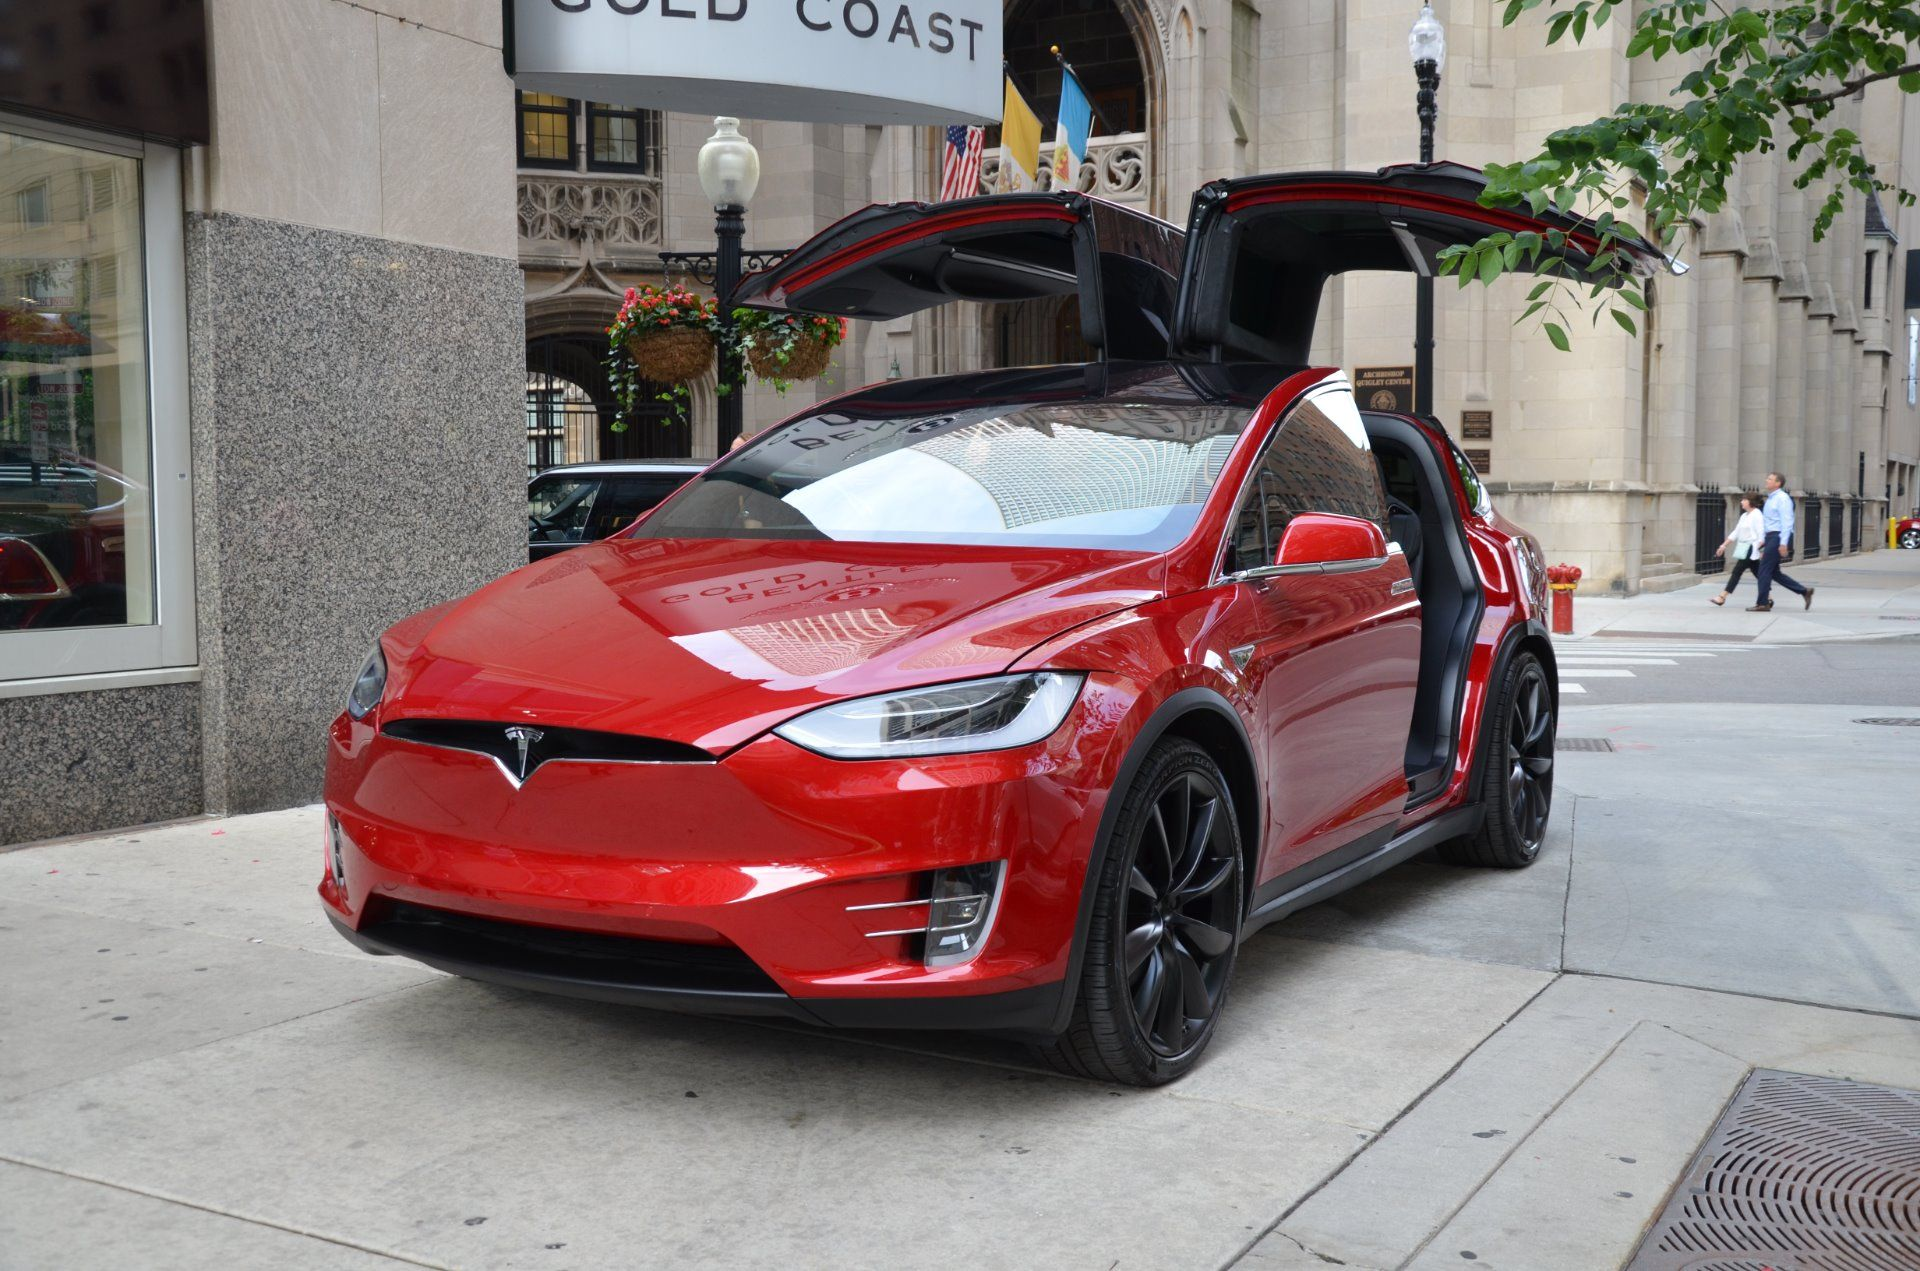 Pin By Gavin M On Tesla In 2020 Tesla Model X Tesla Tesla Model